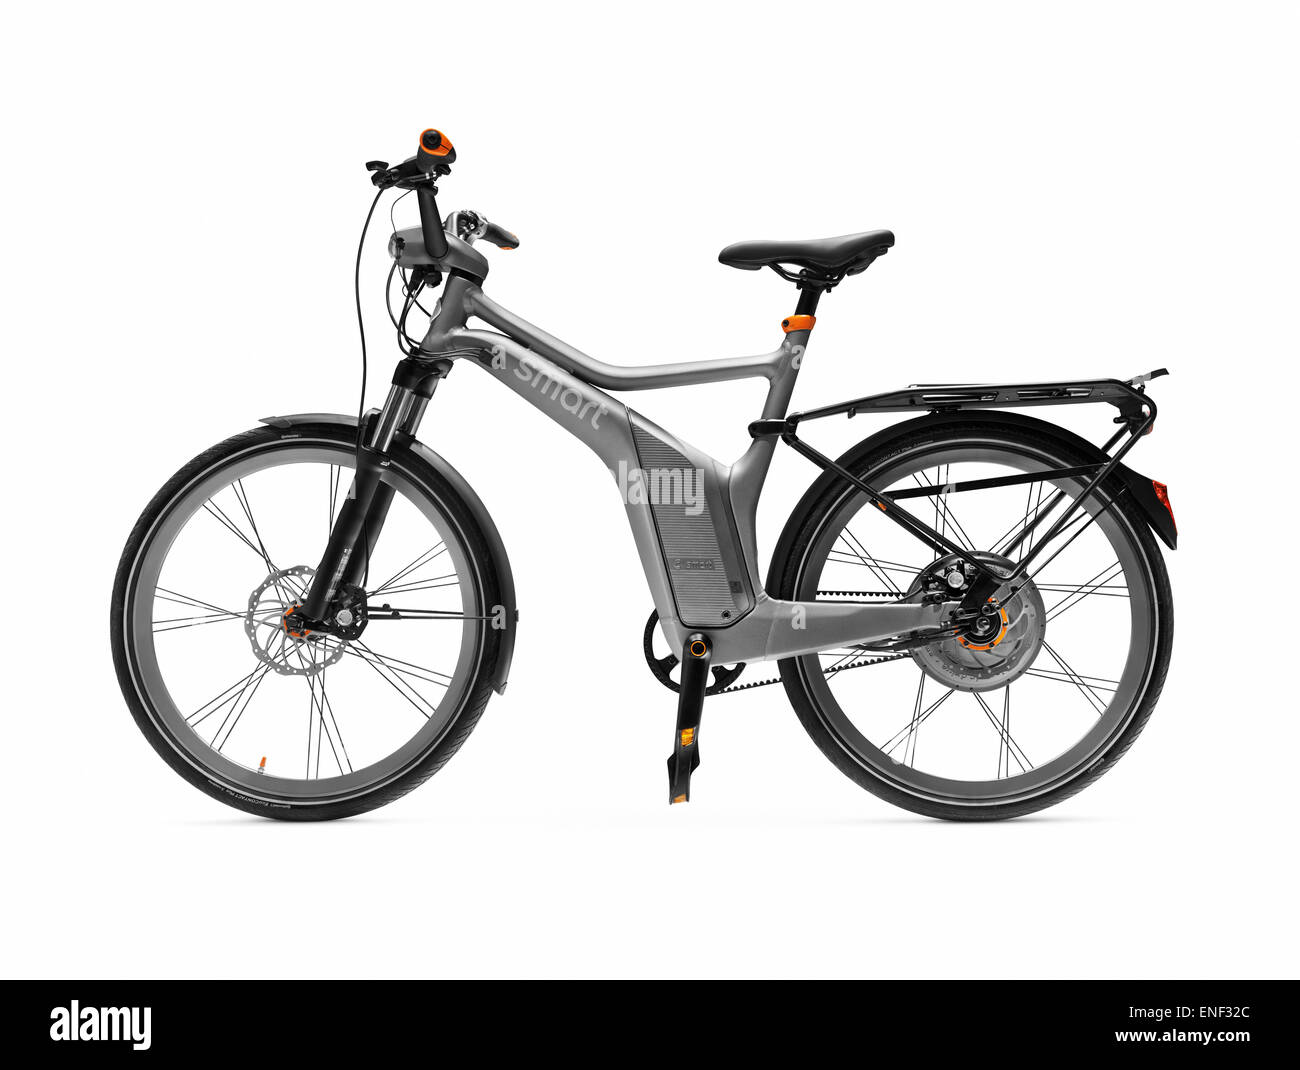 electric bicycle smart ebike isolated on white. Black Bedroom Furniture Sets. Home Design Ideas